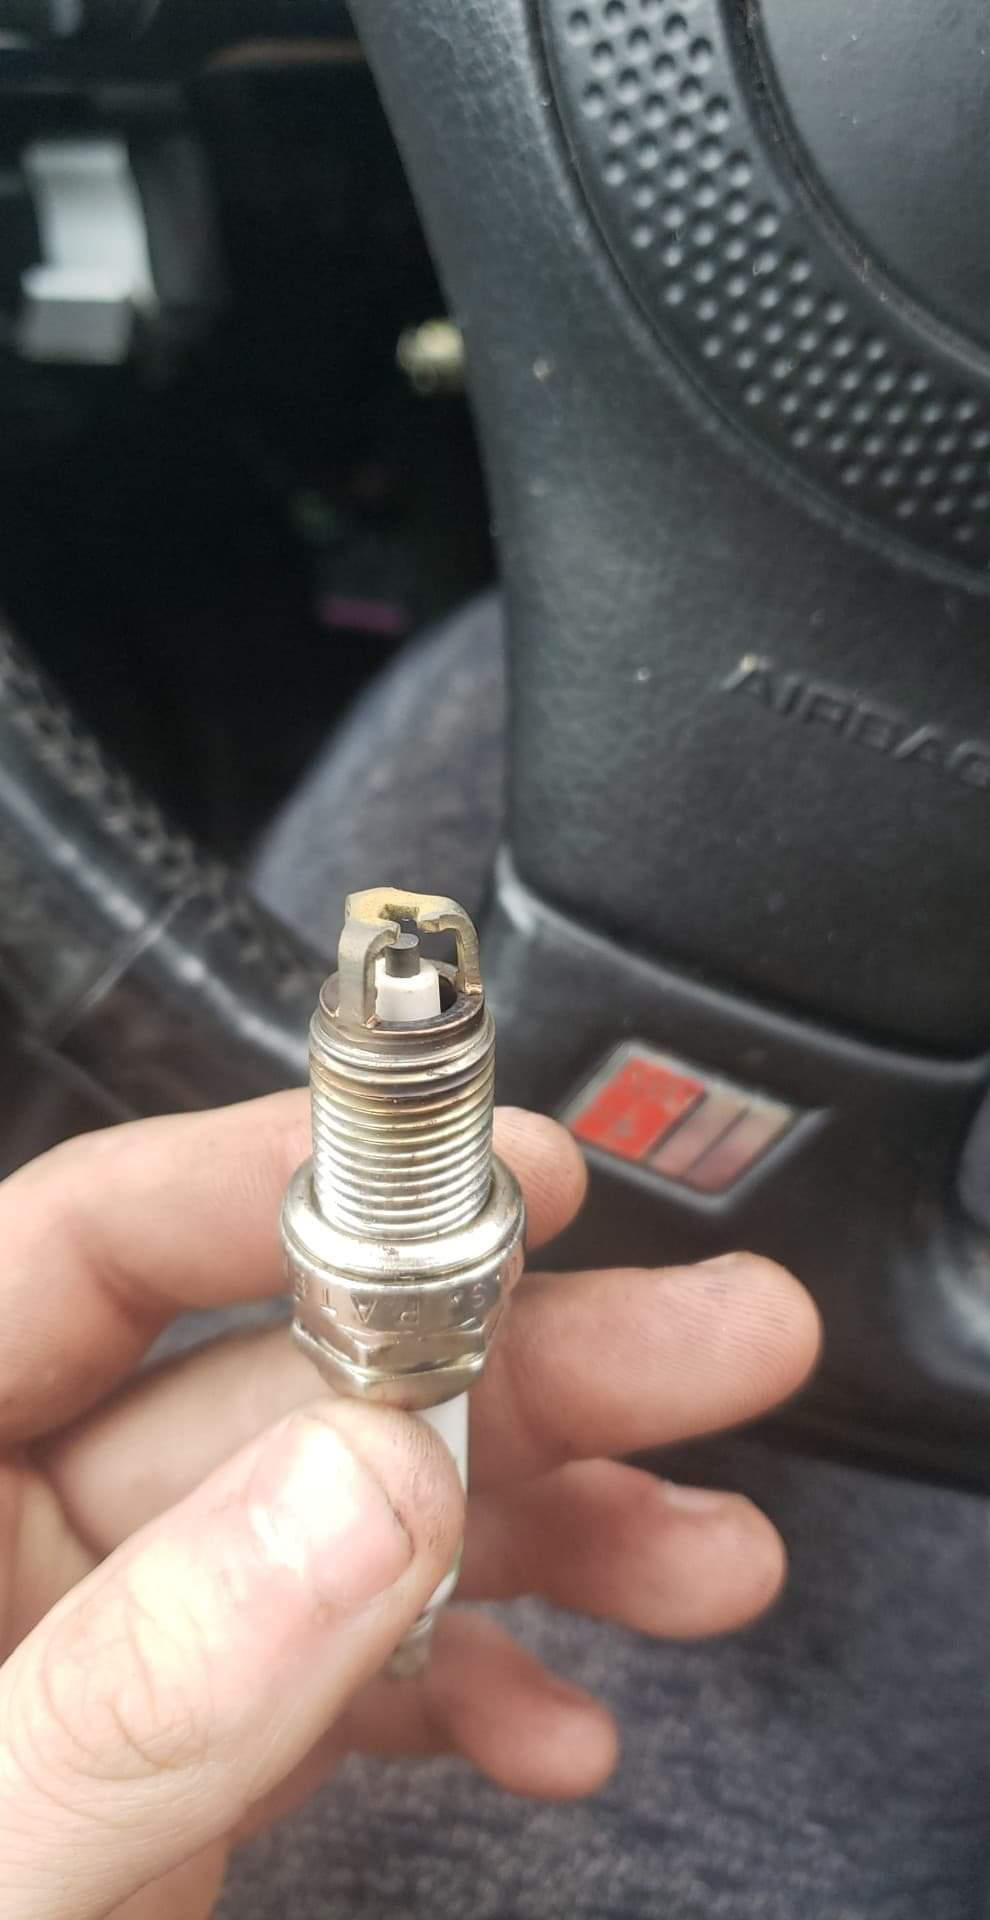 Spark Plug Misfire >> Bad Hesitation And Misfire In Cylinder 1 In 2000rpm Range